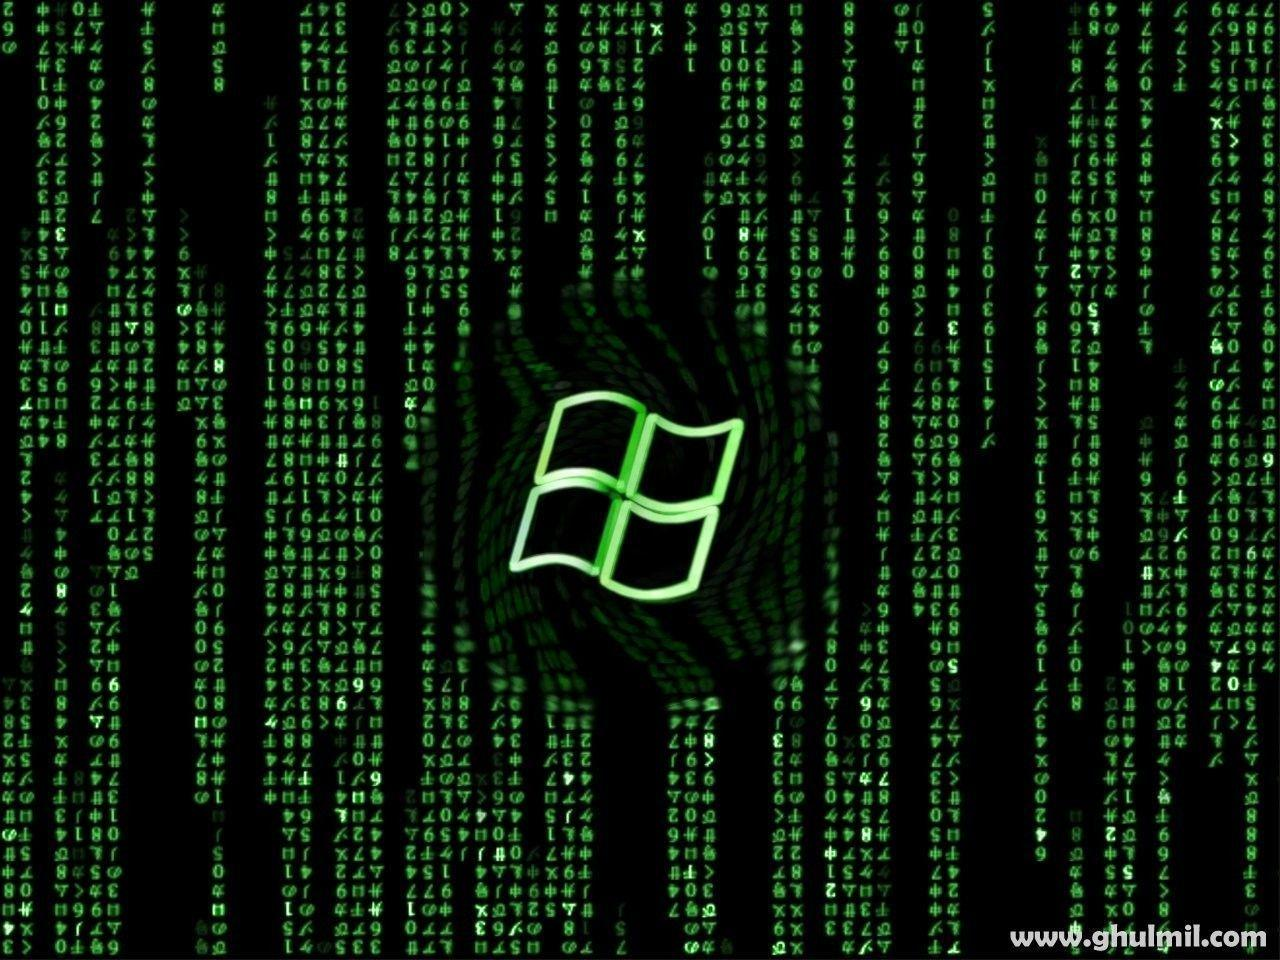 hackers wallpaper wallpapers de - photo #6